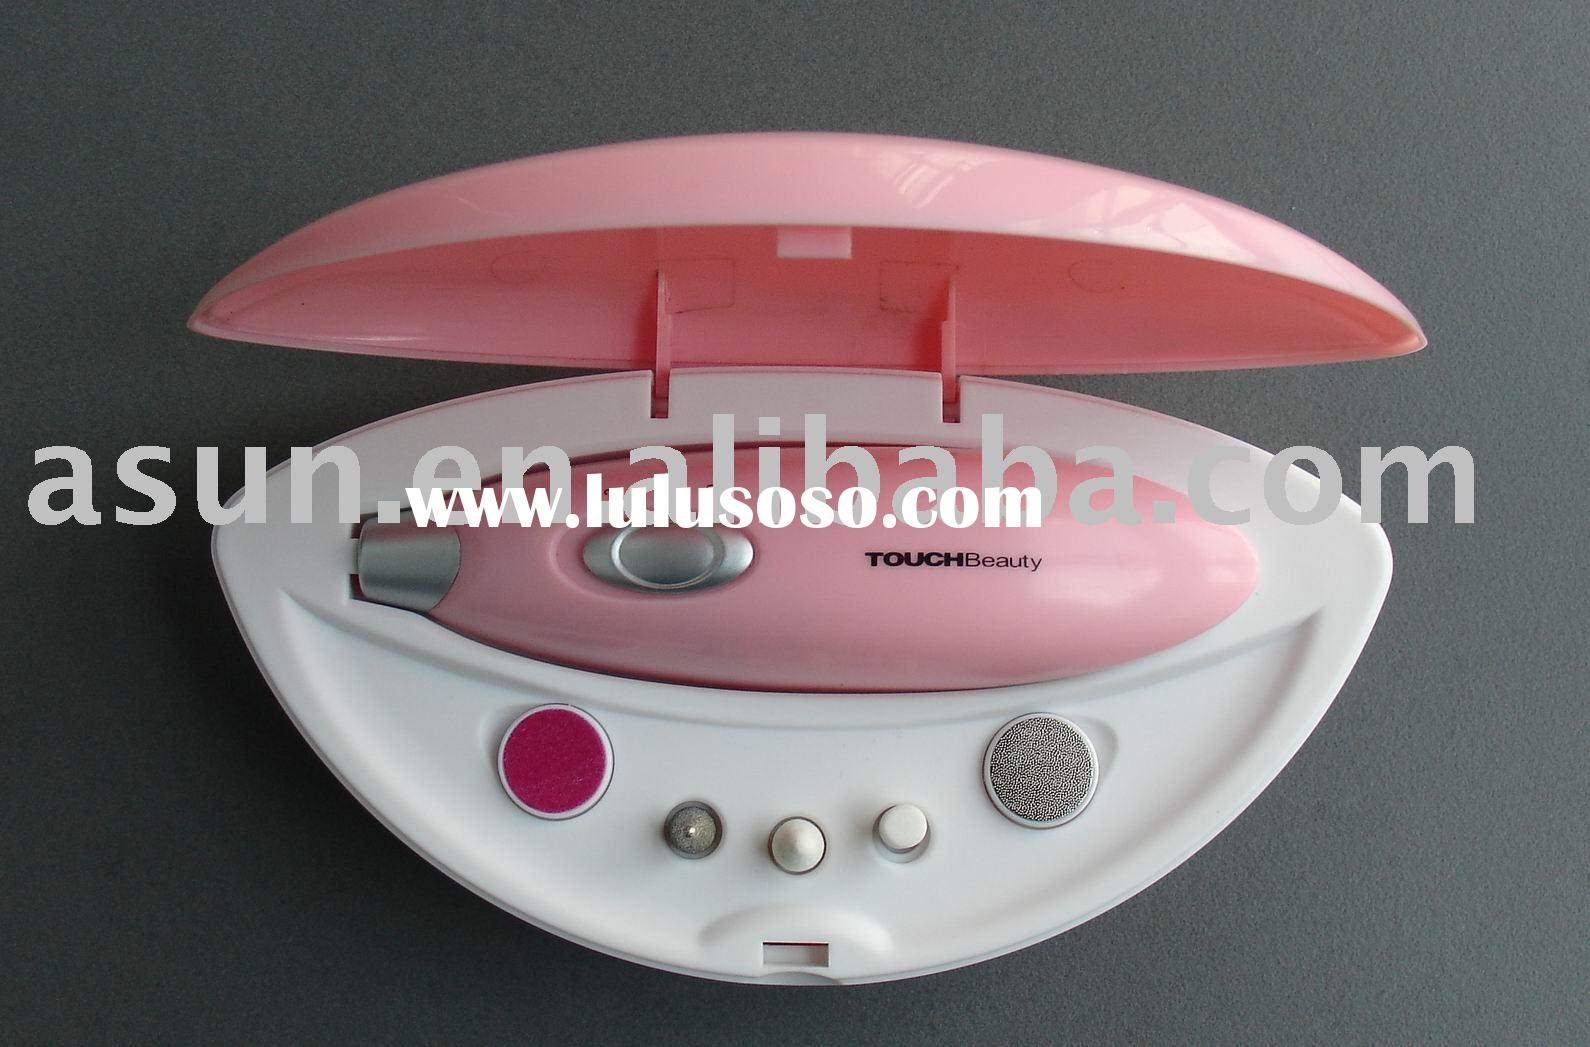 Battery operated manicure set